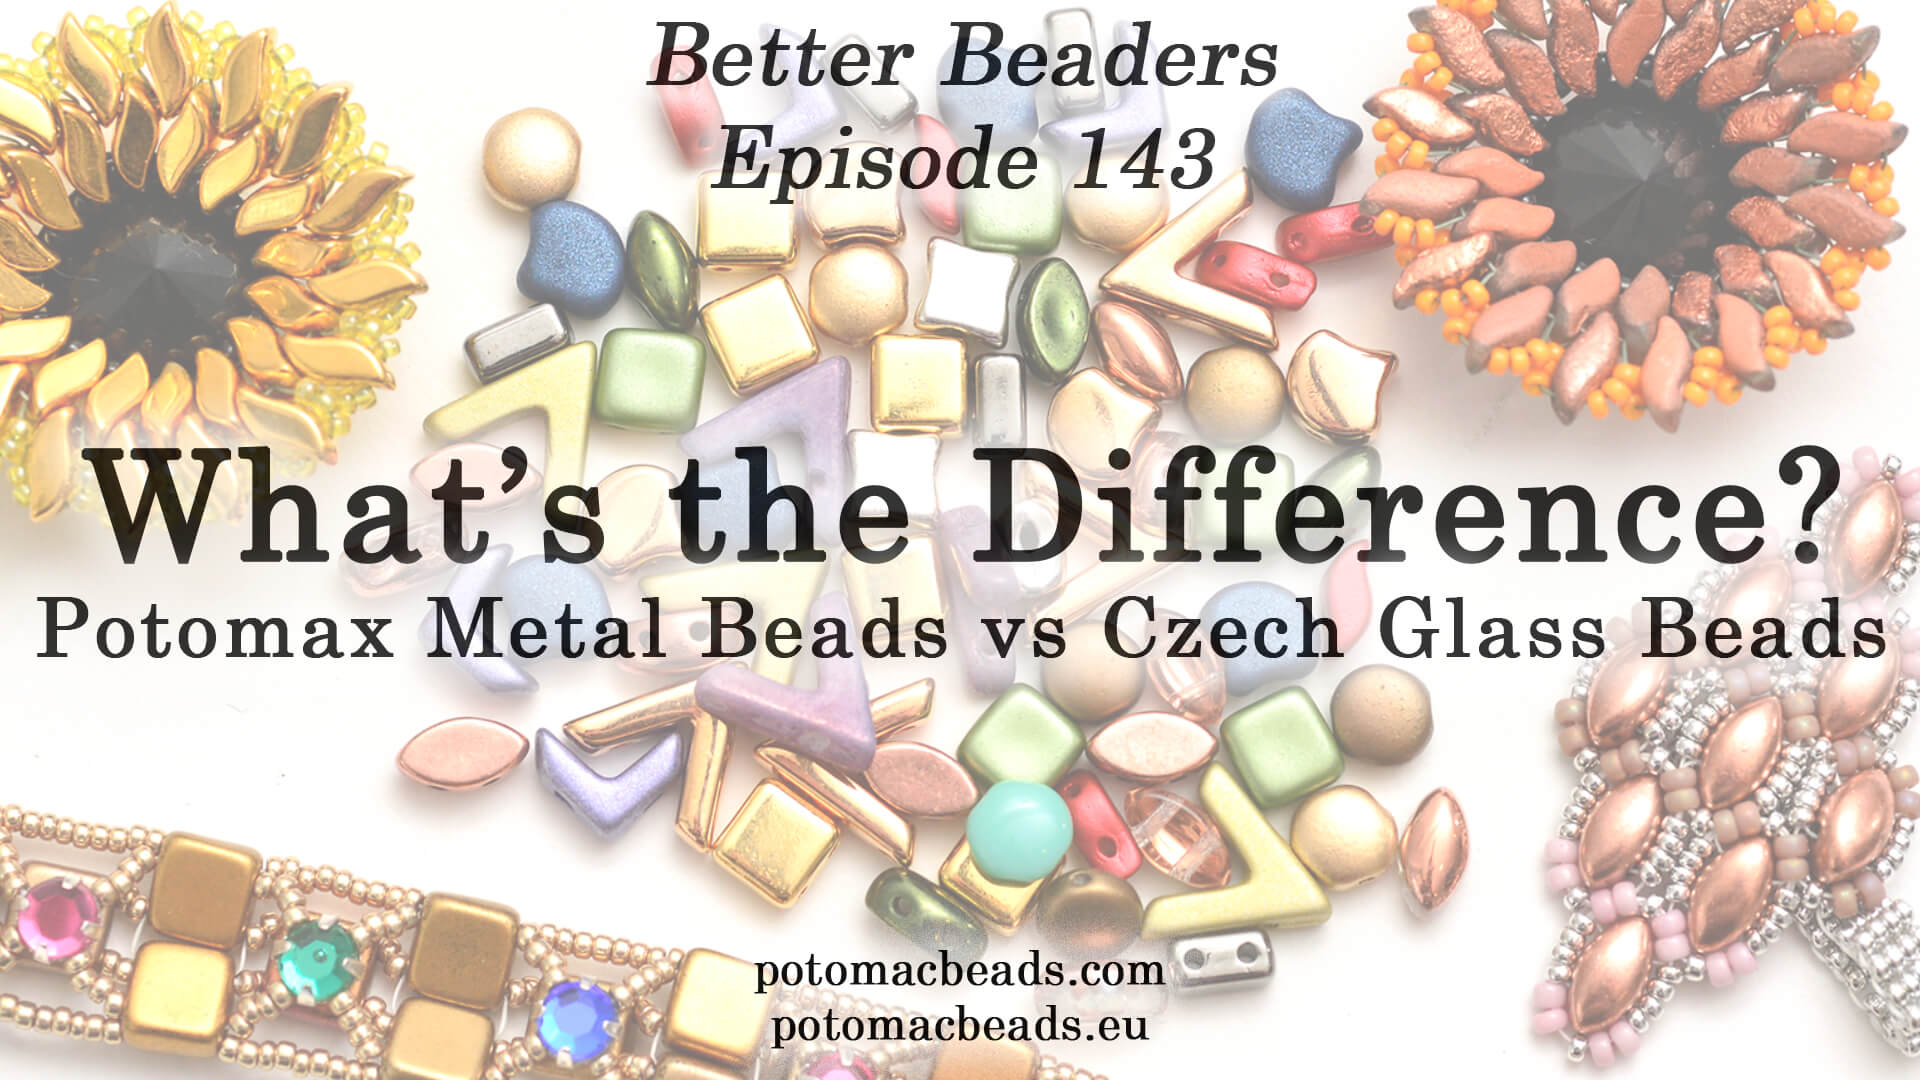 How to Bead Jewelry / Better Beader Episodes / Better Beader Episode 143 - Difference Between Potomax Metal Beads vs Czech Glass Beads